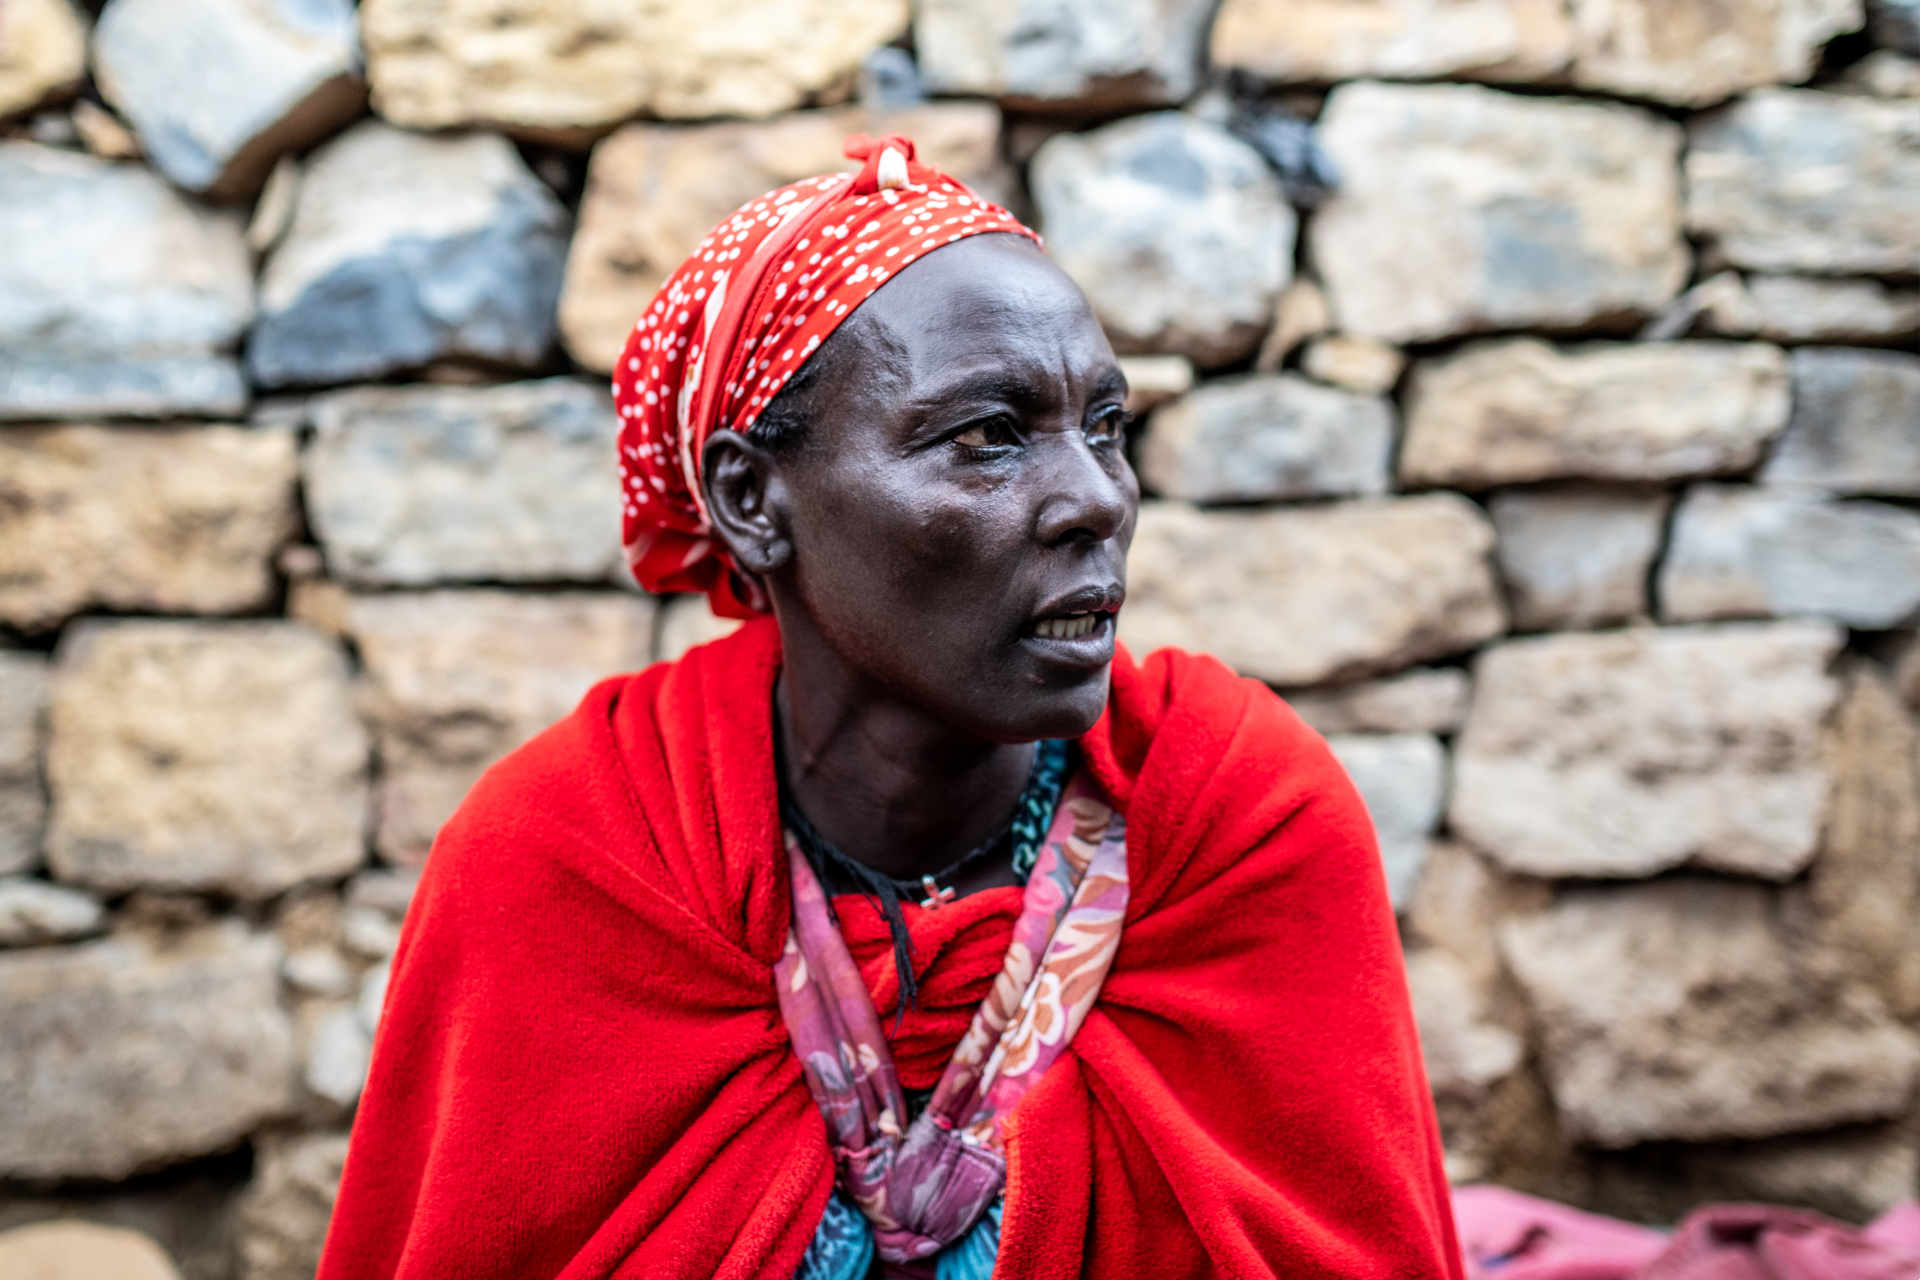 Gidey Gessesse, 42, sits in her home in Hadnet subcity, Mekelle. Gidey has been house-bound since Covid and the Tigray conflict started, unable to generate an income or leave her home for fear of attack.